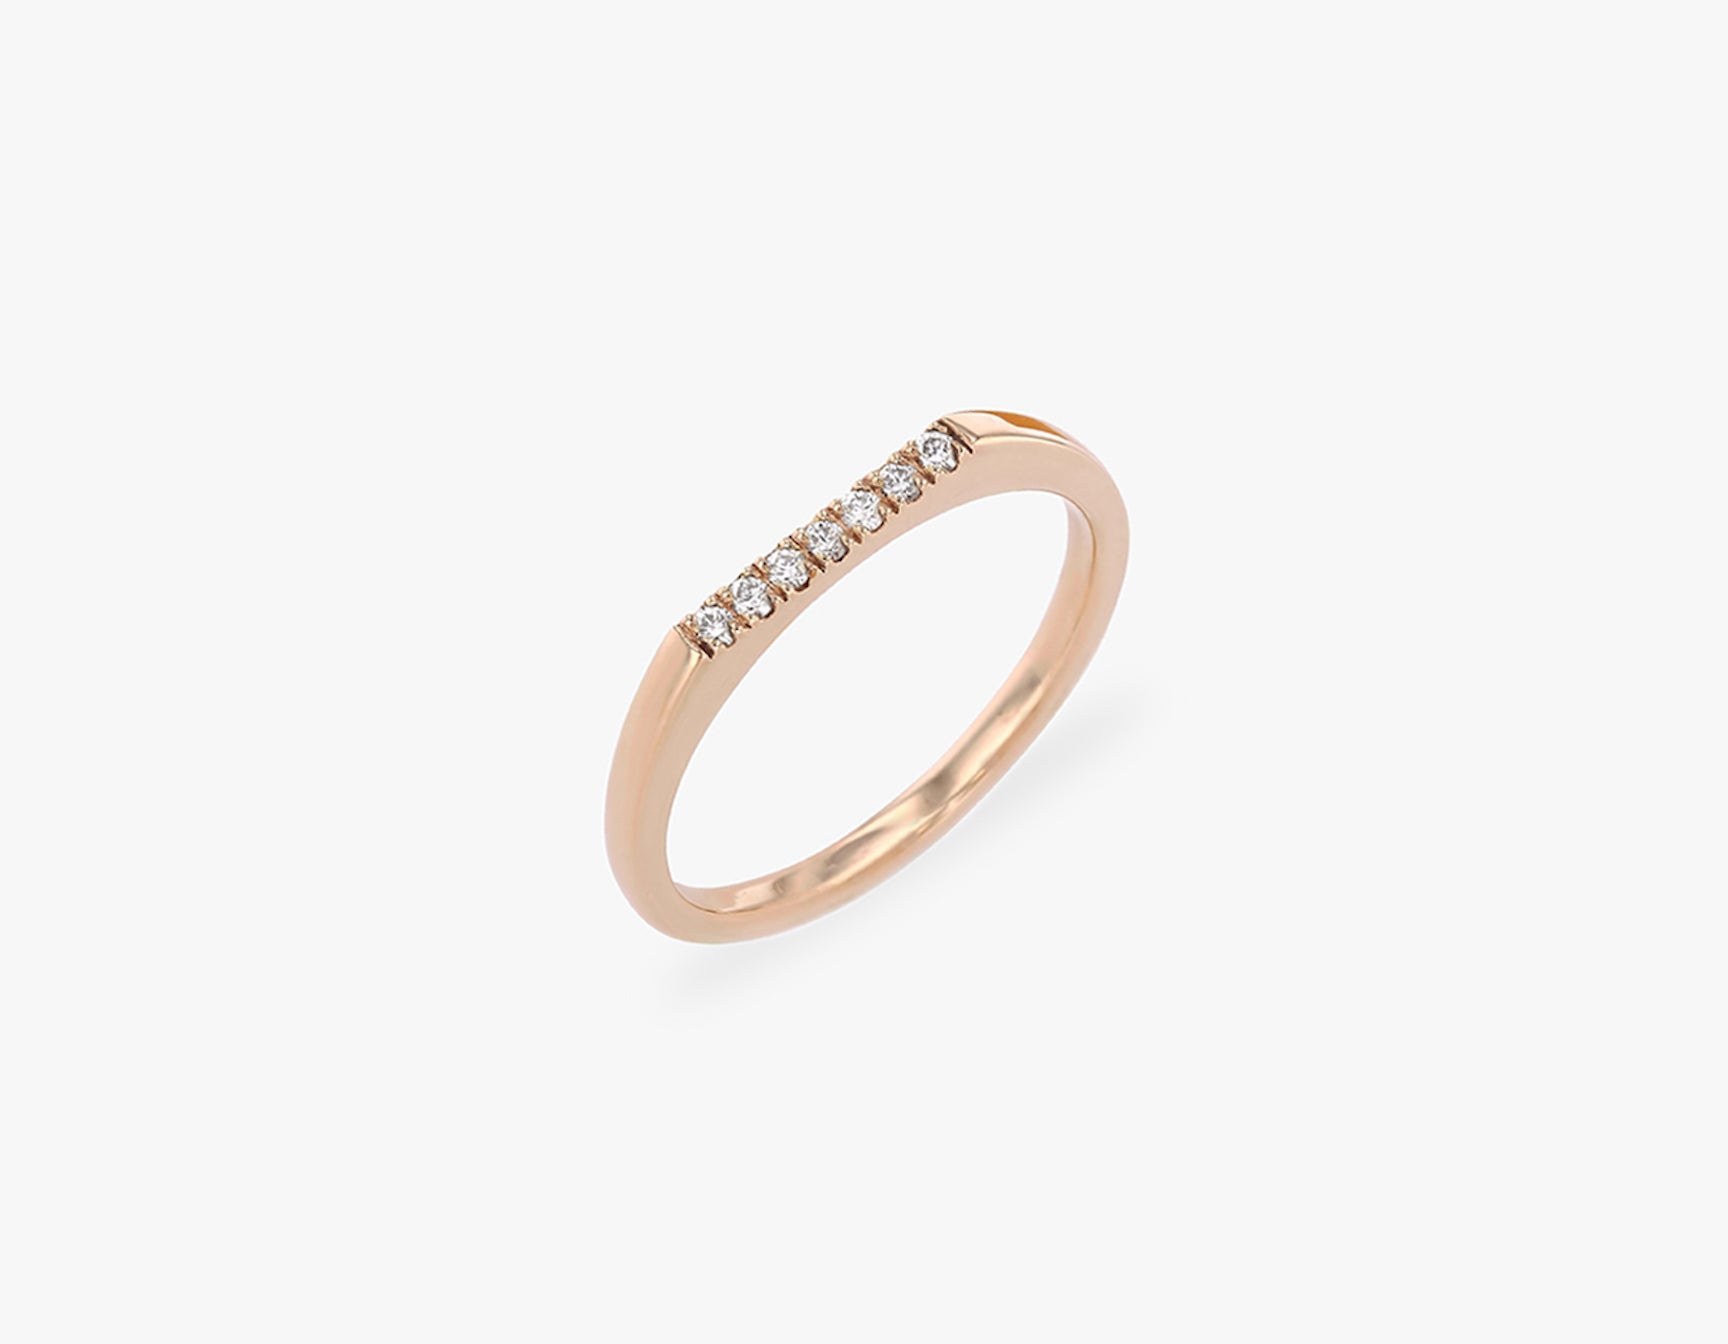 Vrai solid gold Pave Line Ring, 14K Rose Gold